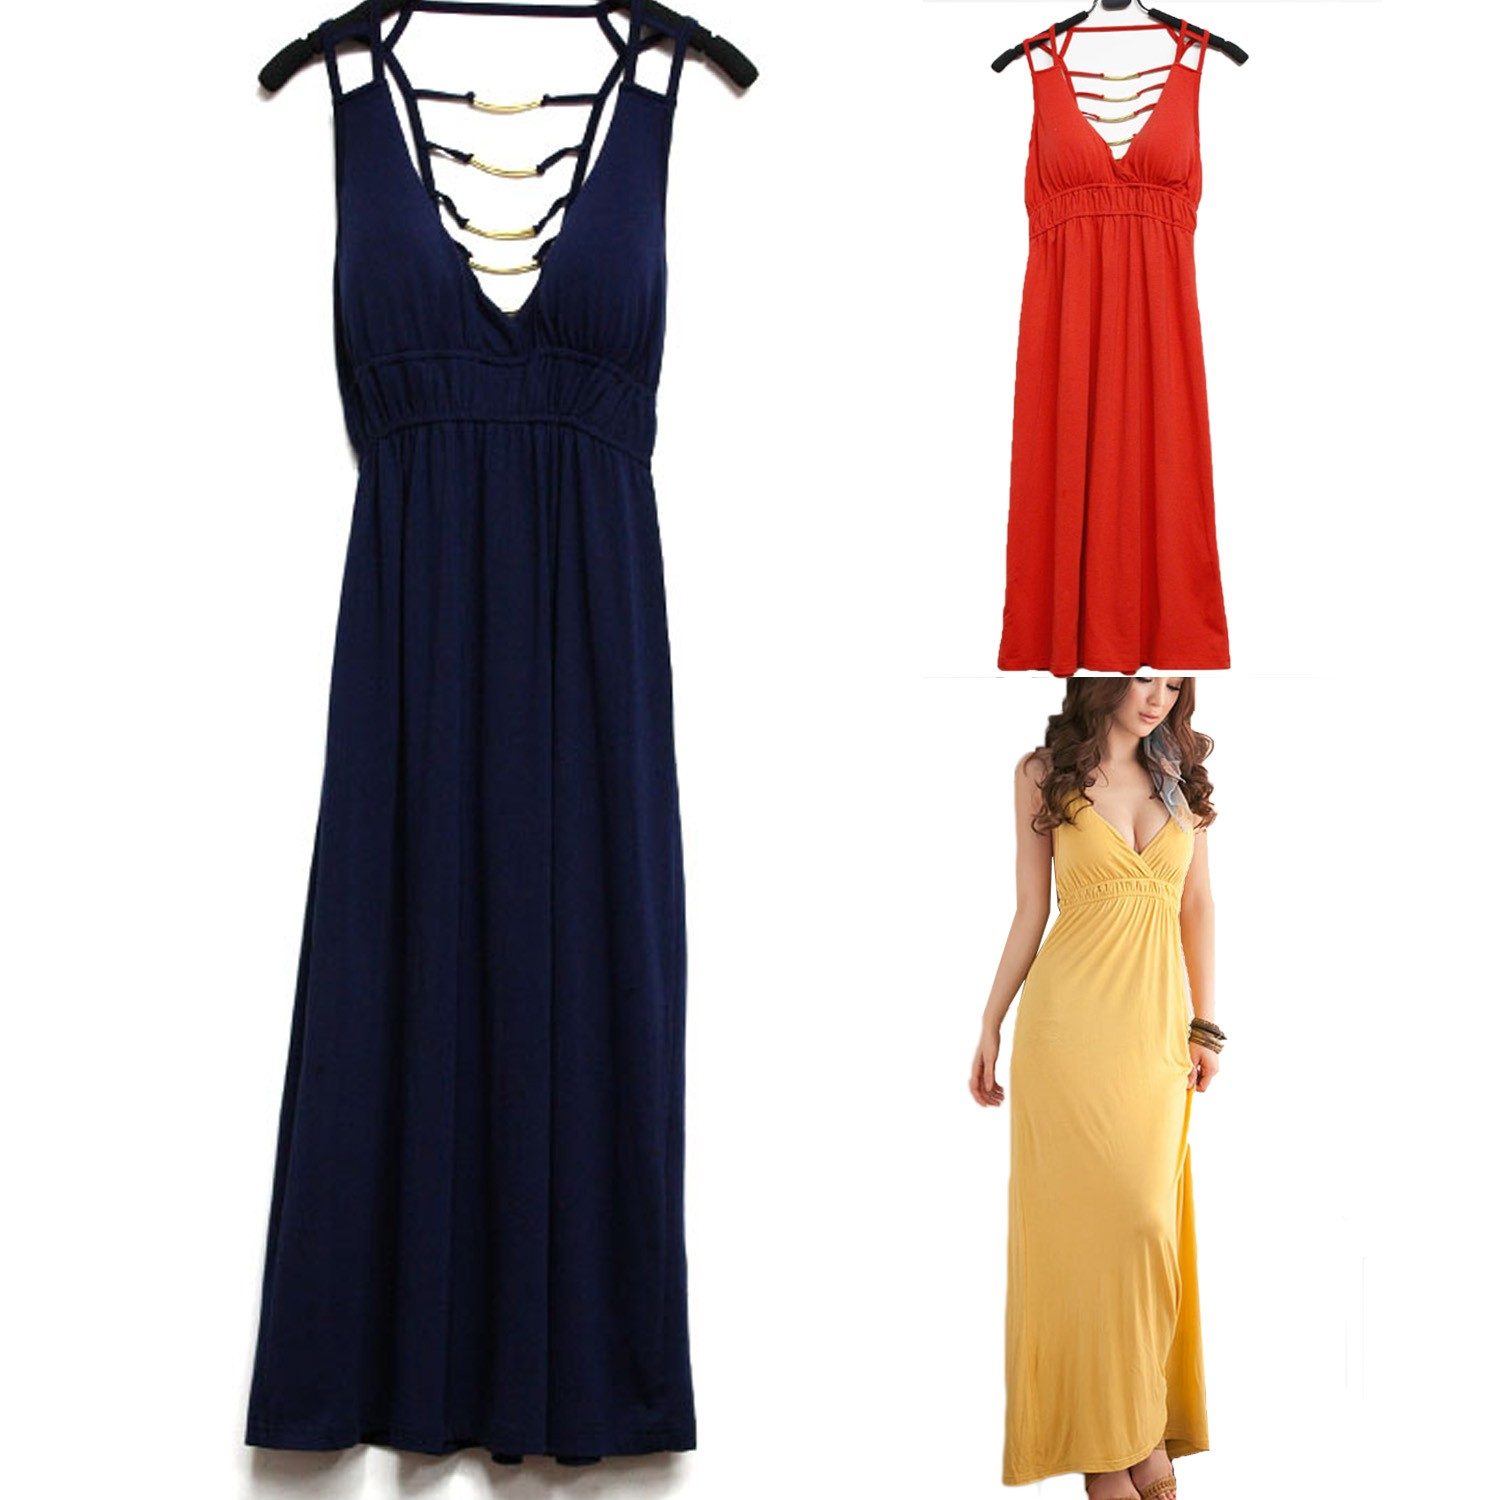 Backless Deep V Maxi Long Dress - tw54#